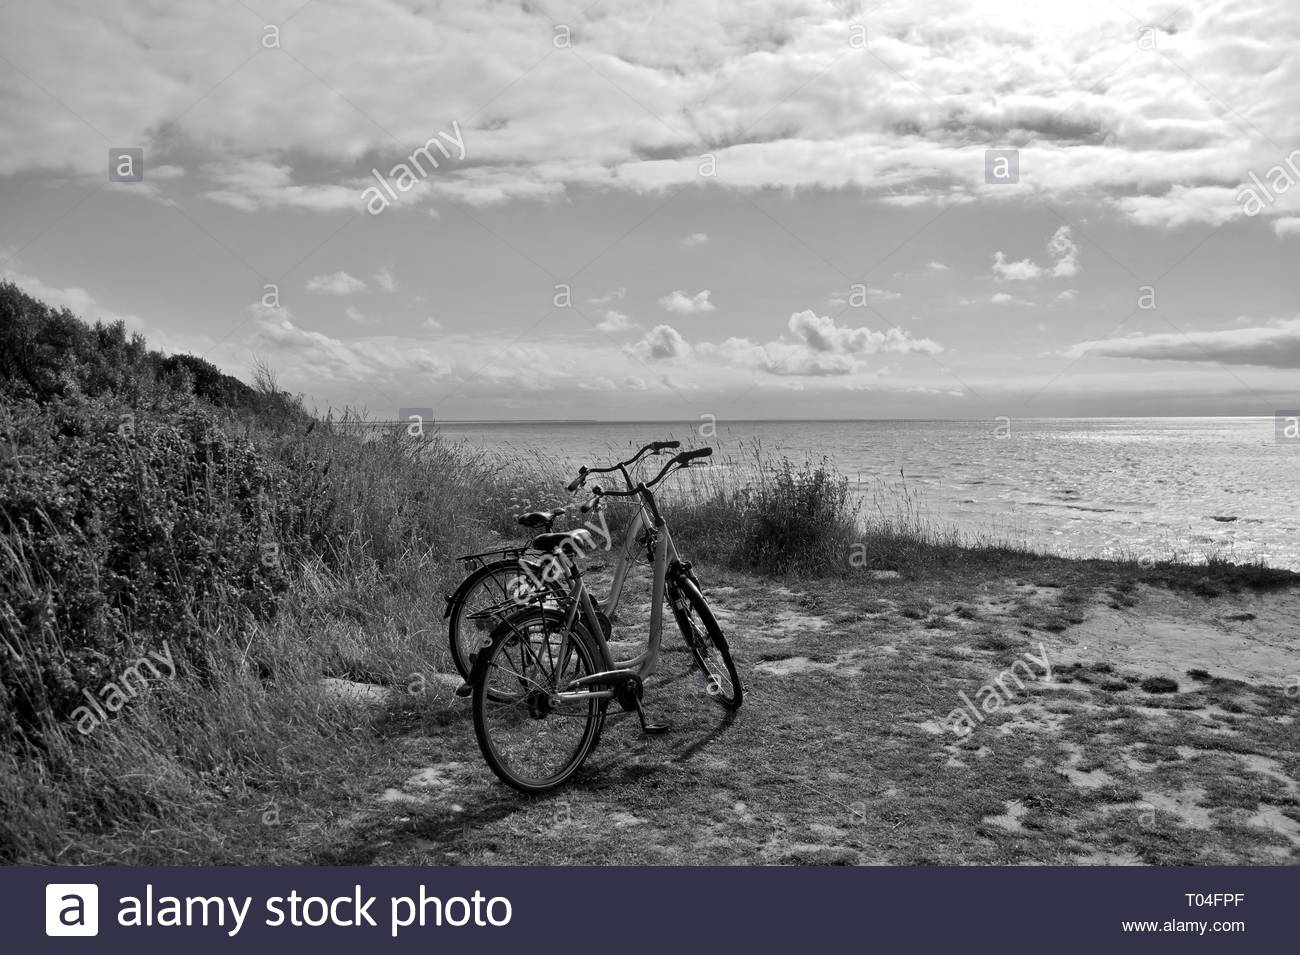 A view of two bicycles parked and a view of a beach on a sunny Day, Baltic Sea Germany, black and white Picture, - Stock Image